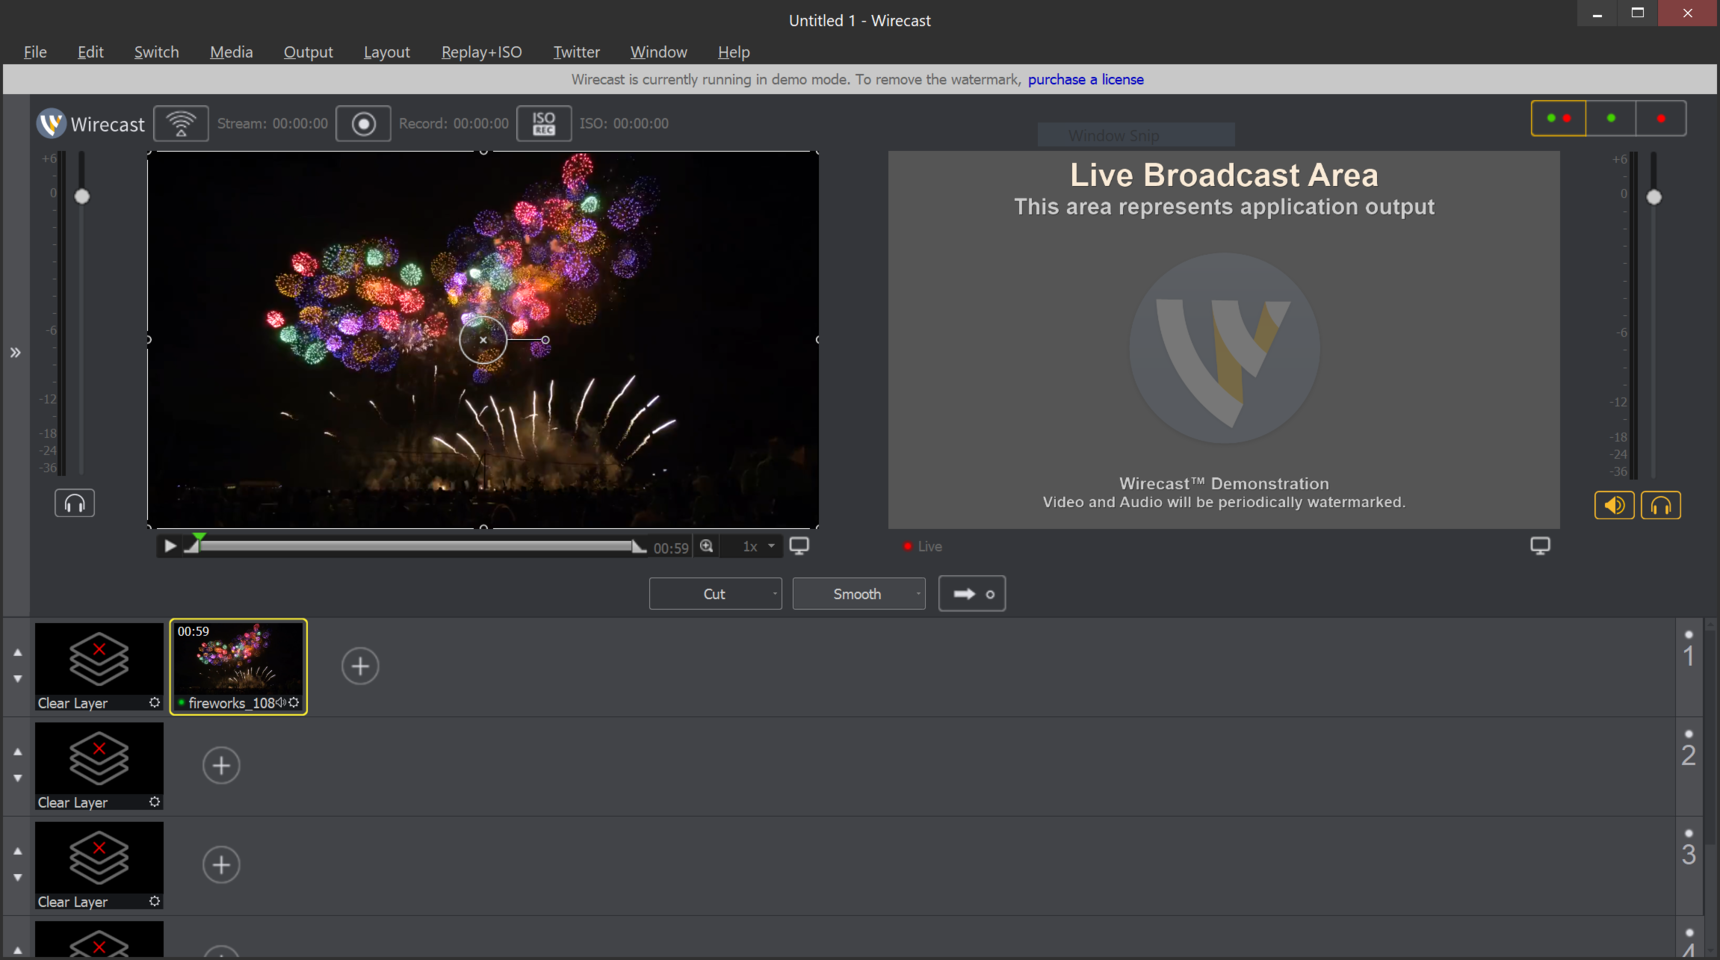 Black screen when playing the video file - Wirecast File